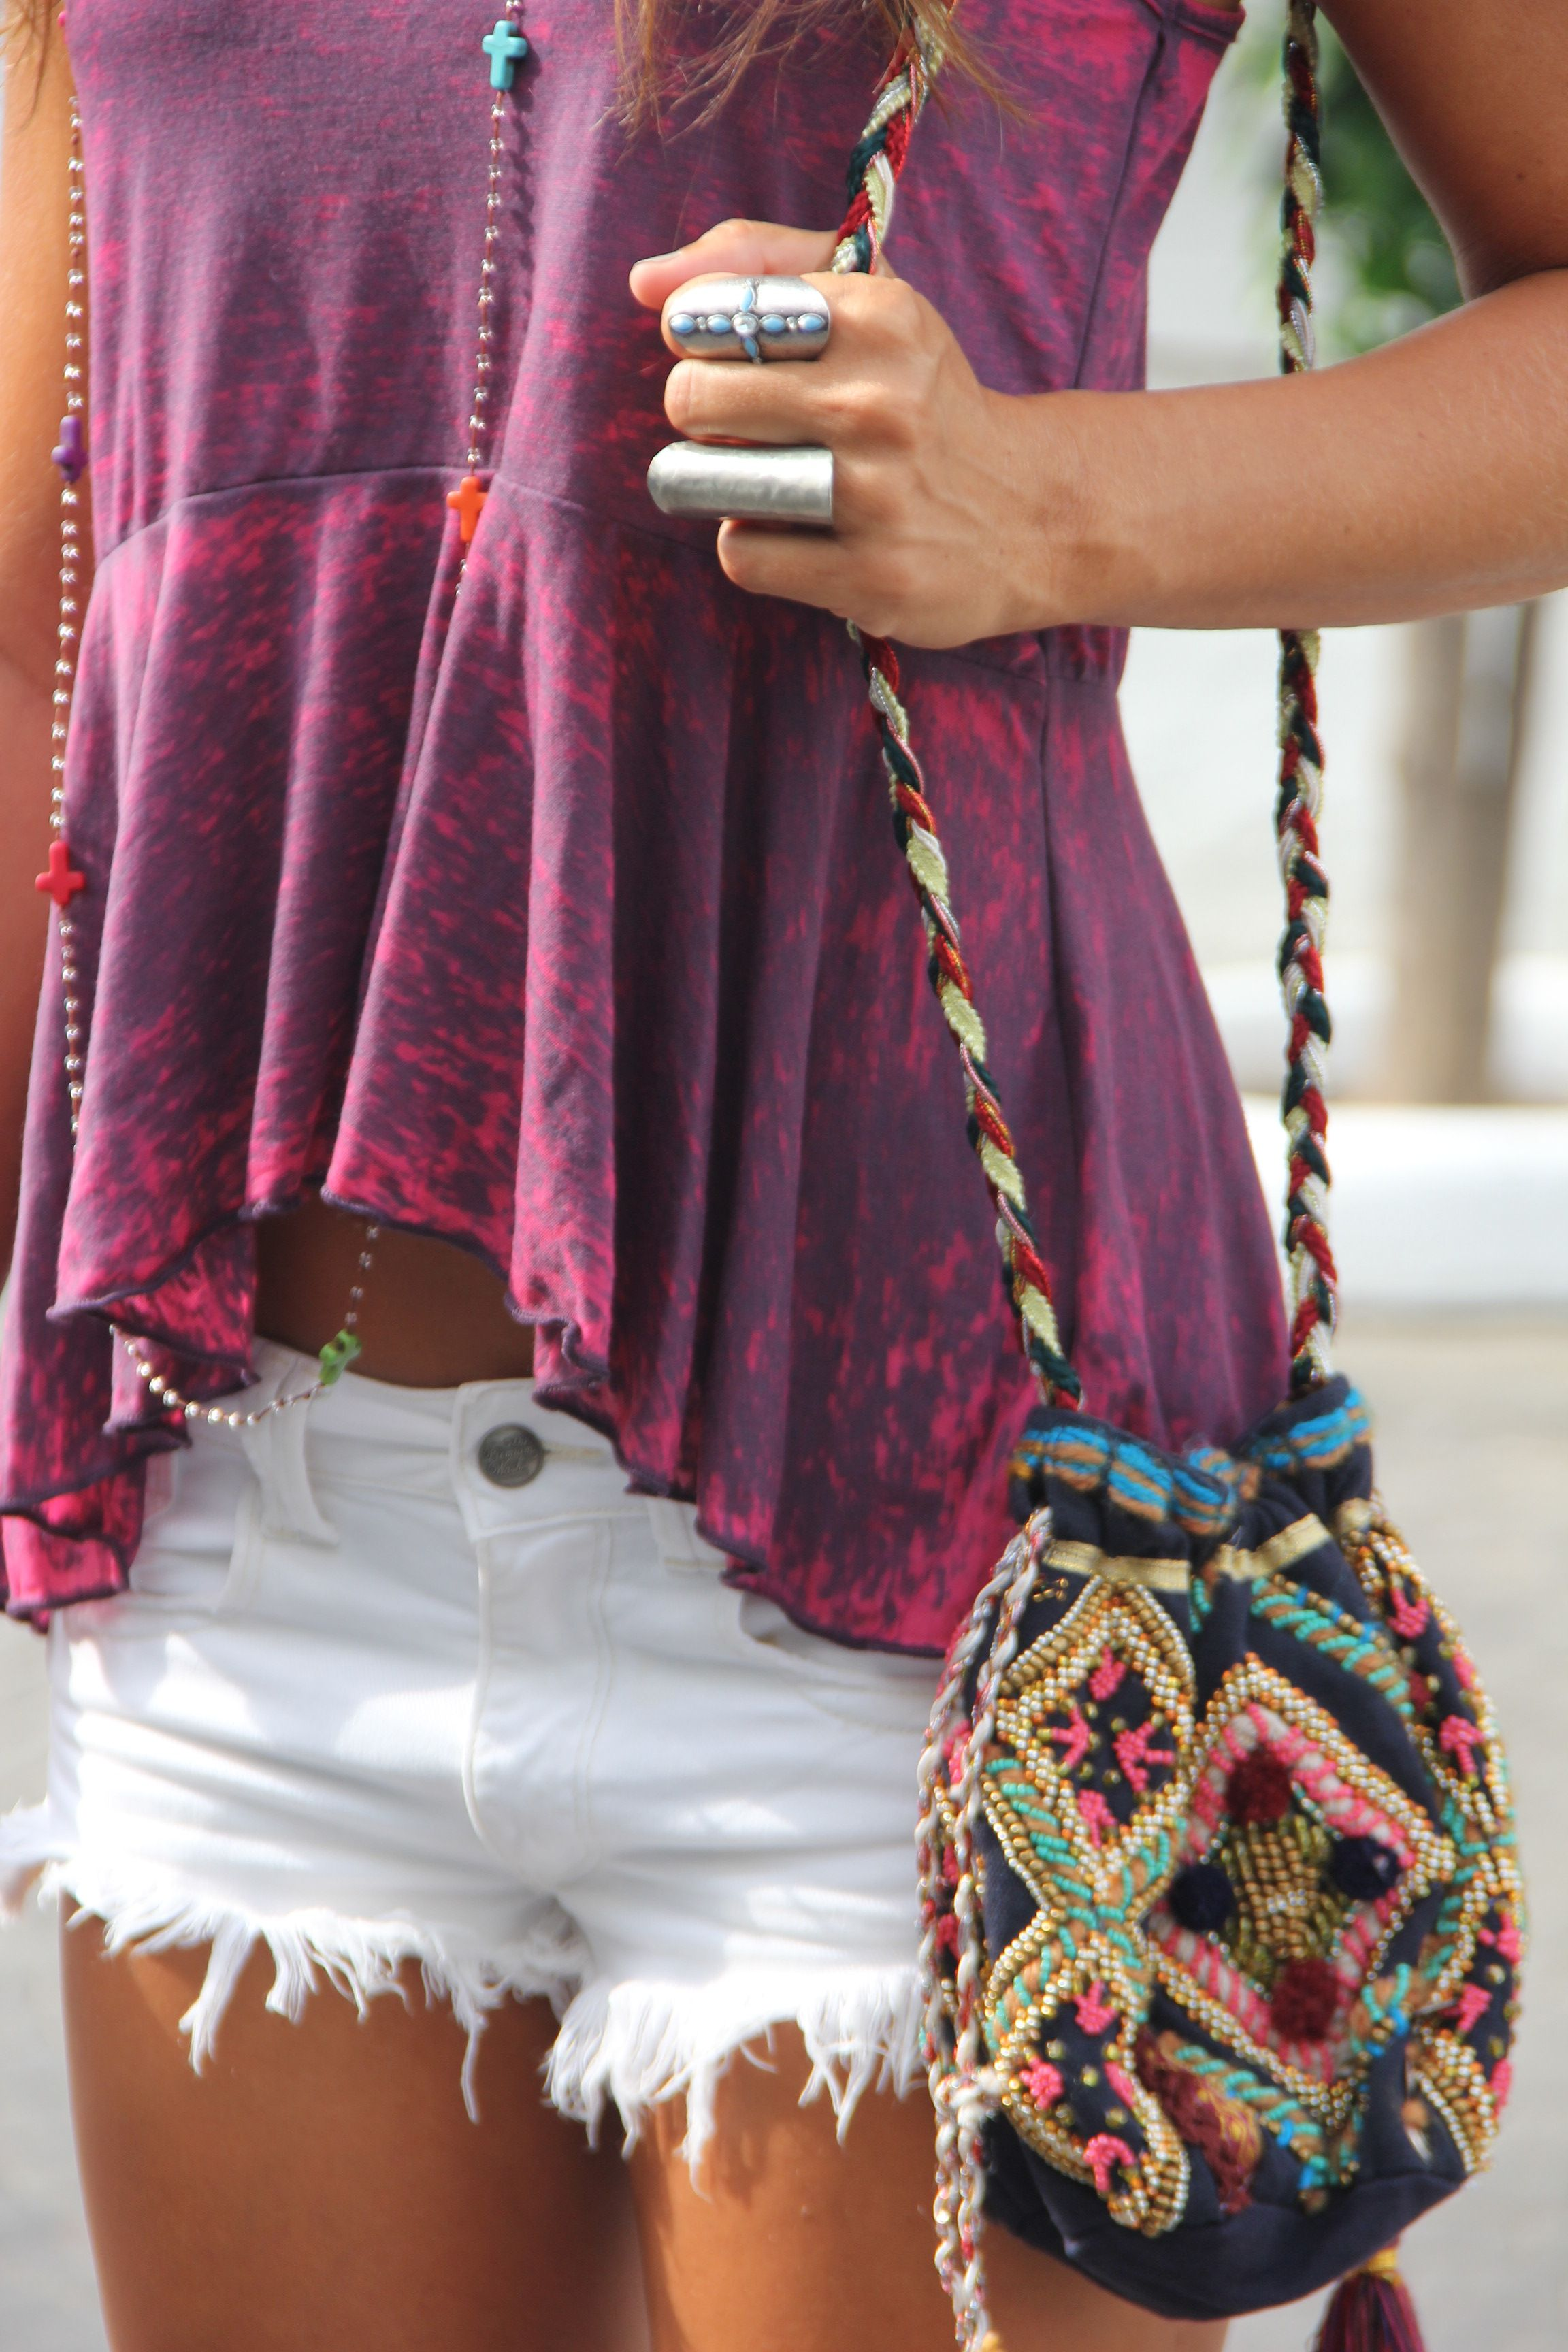 Beaded, boho pouch #summer #style #accessories | Fashion | Pinterest ...